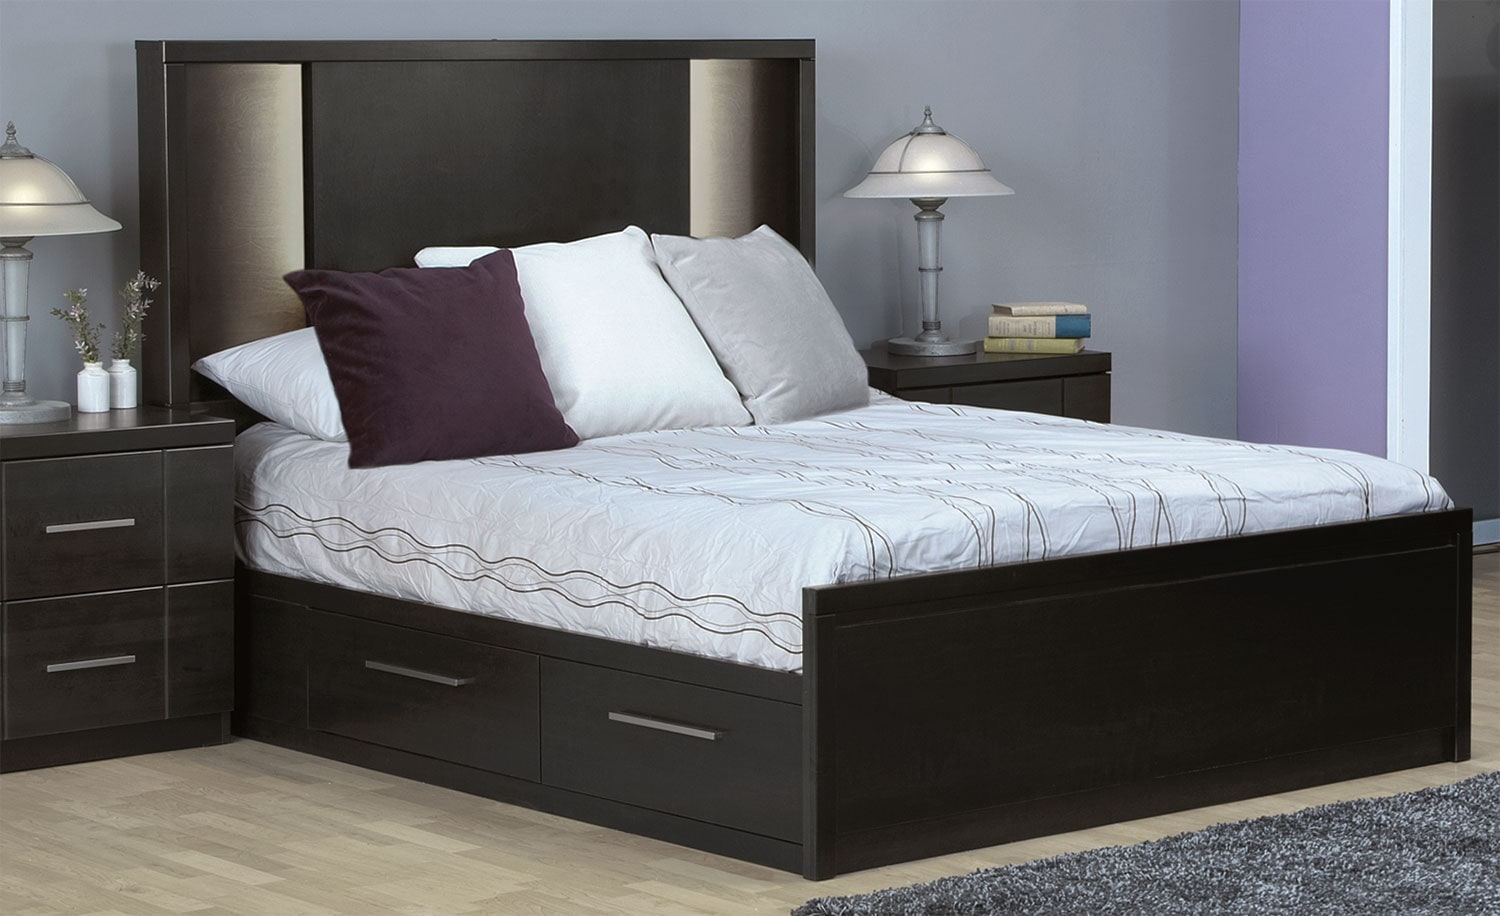 Seville 4-Piece Queen Storage Bed Set - Charcoal